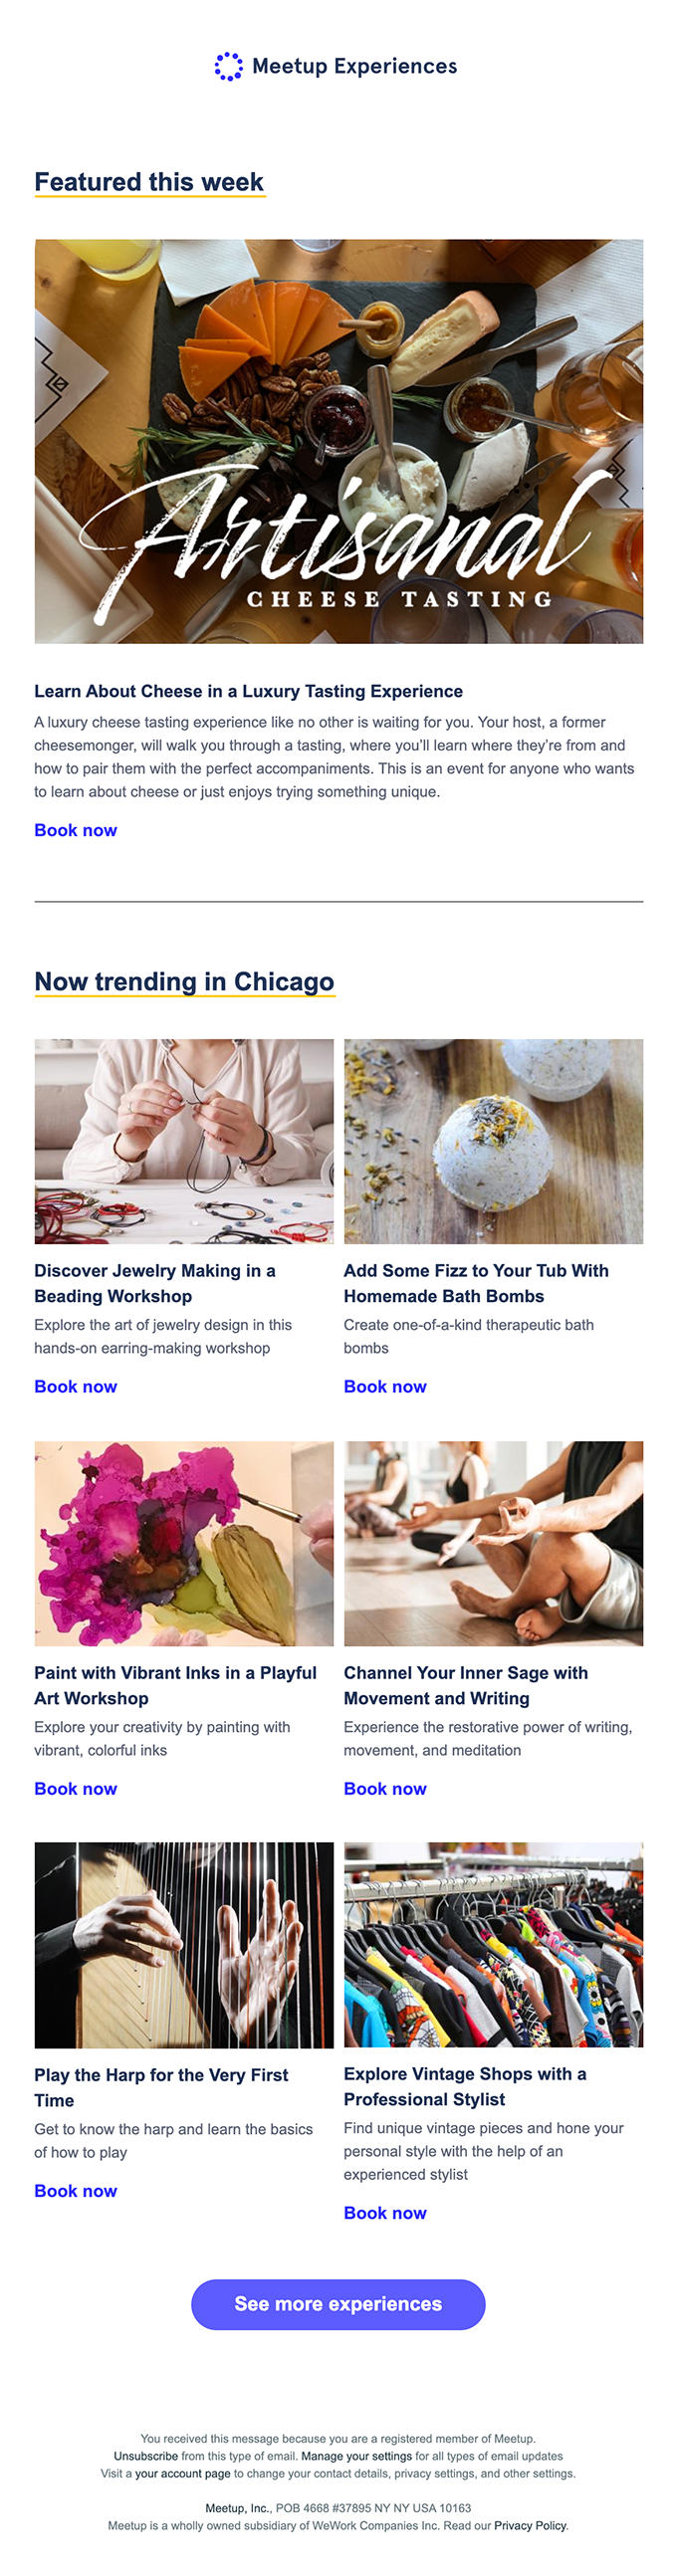 New in Chicago: Cheese, jewelry making, bath bombs